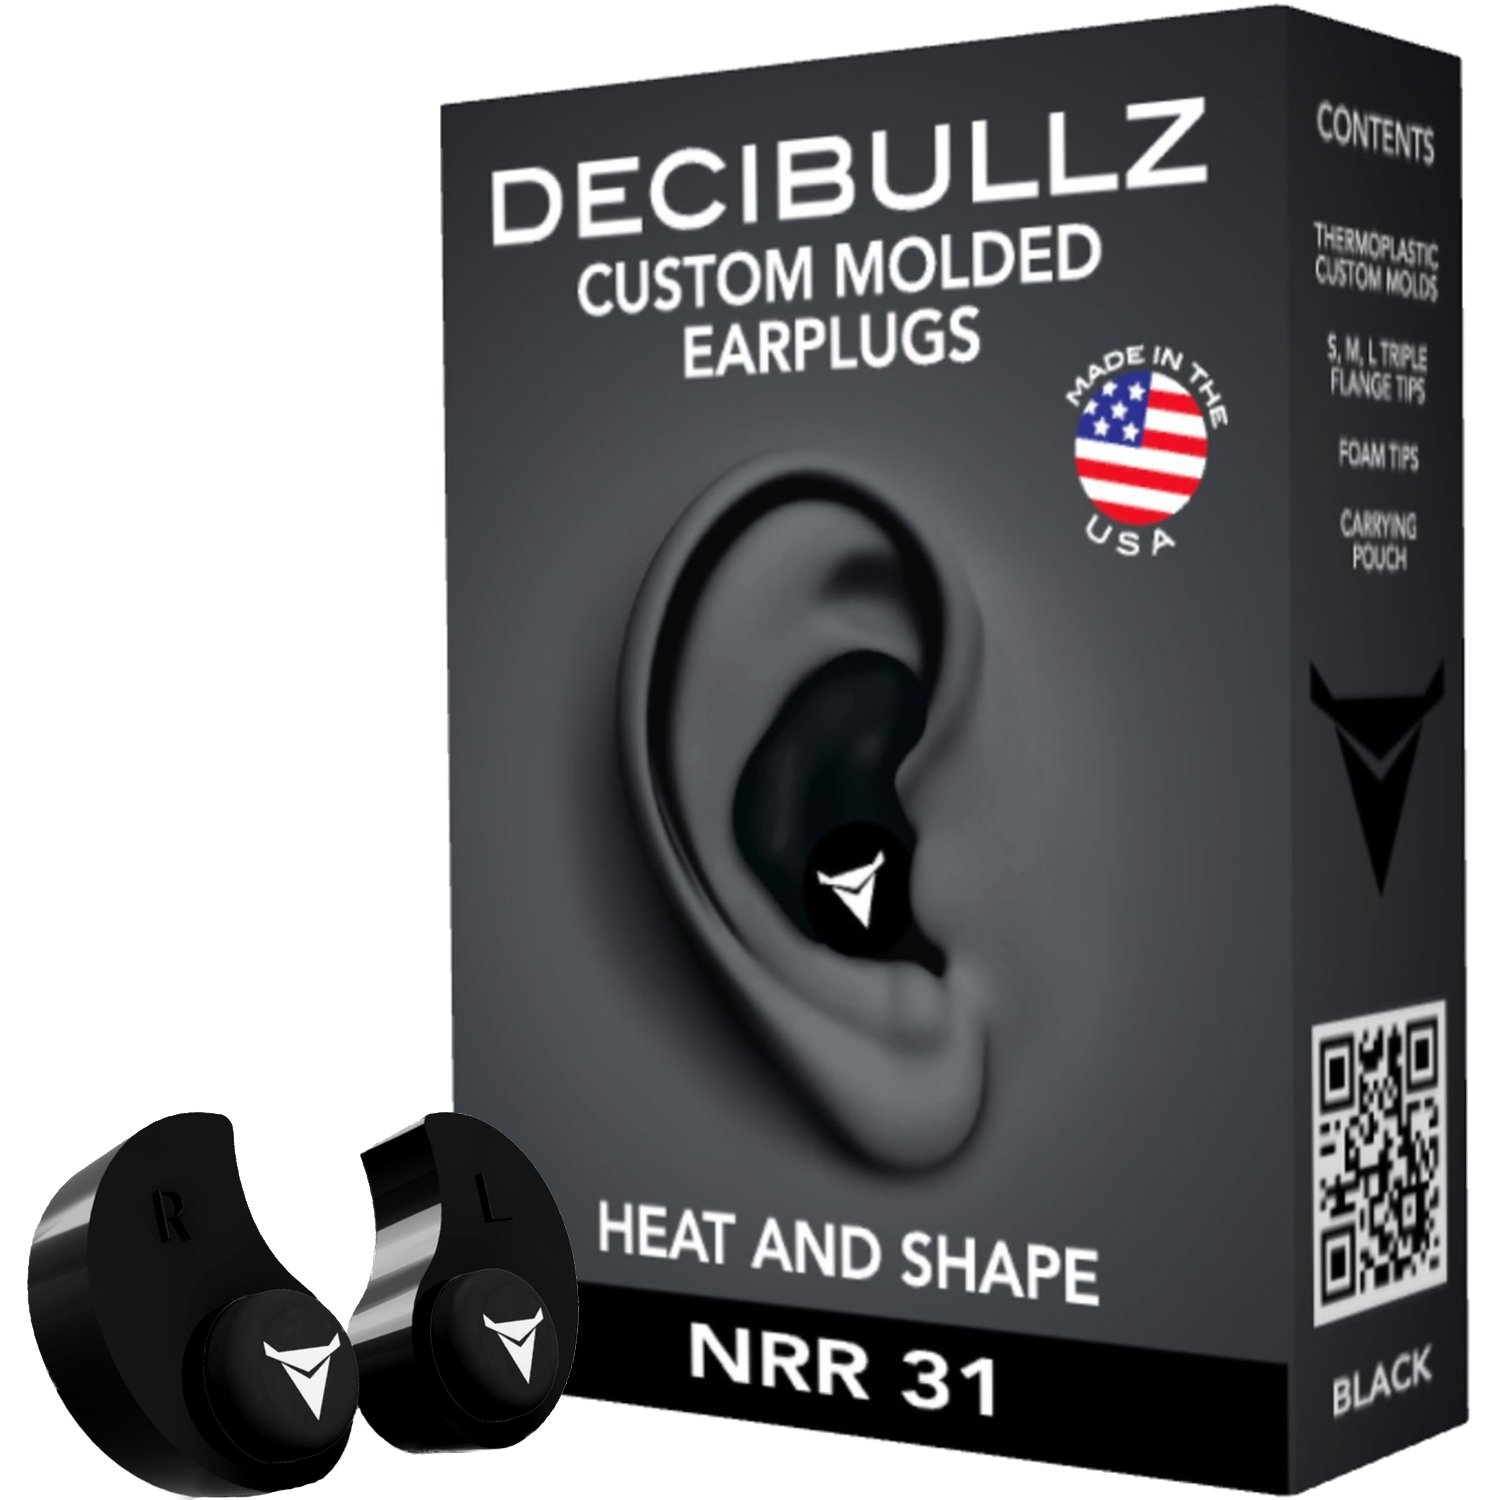 Decibullz - Custom Molded Earplugs, 31dB Highest NRR, Comfortable Hearing Protection Shooting, Travel, Swimming, Work Concerts (Black)